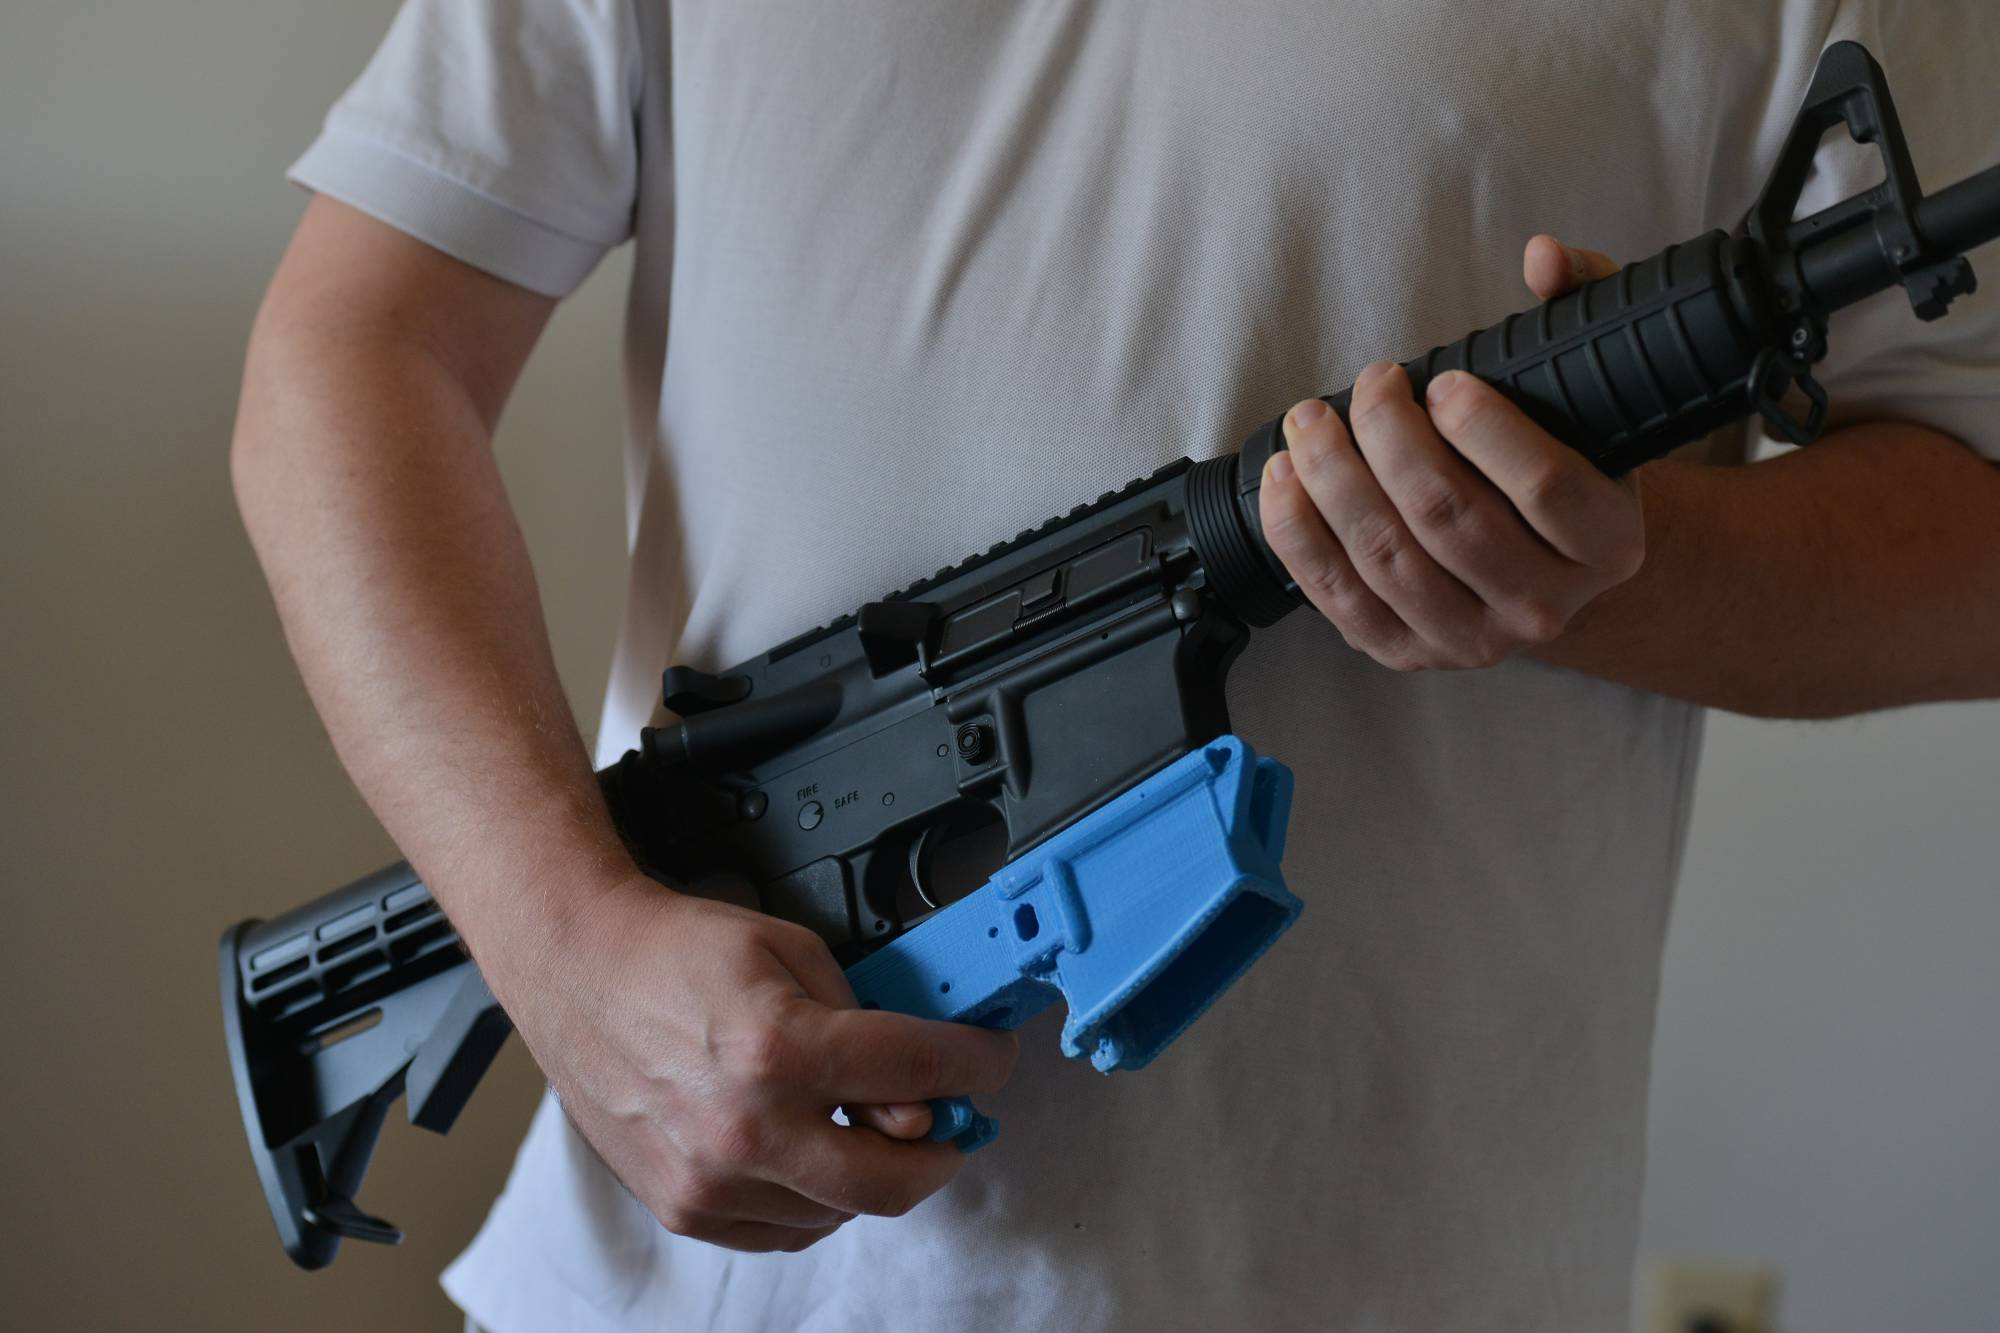 A federal judge's ruling on Monday blocks people from legally posting 3D-printed gun blueprints on the Internet.